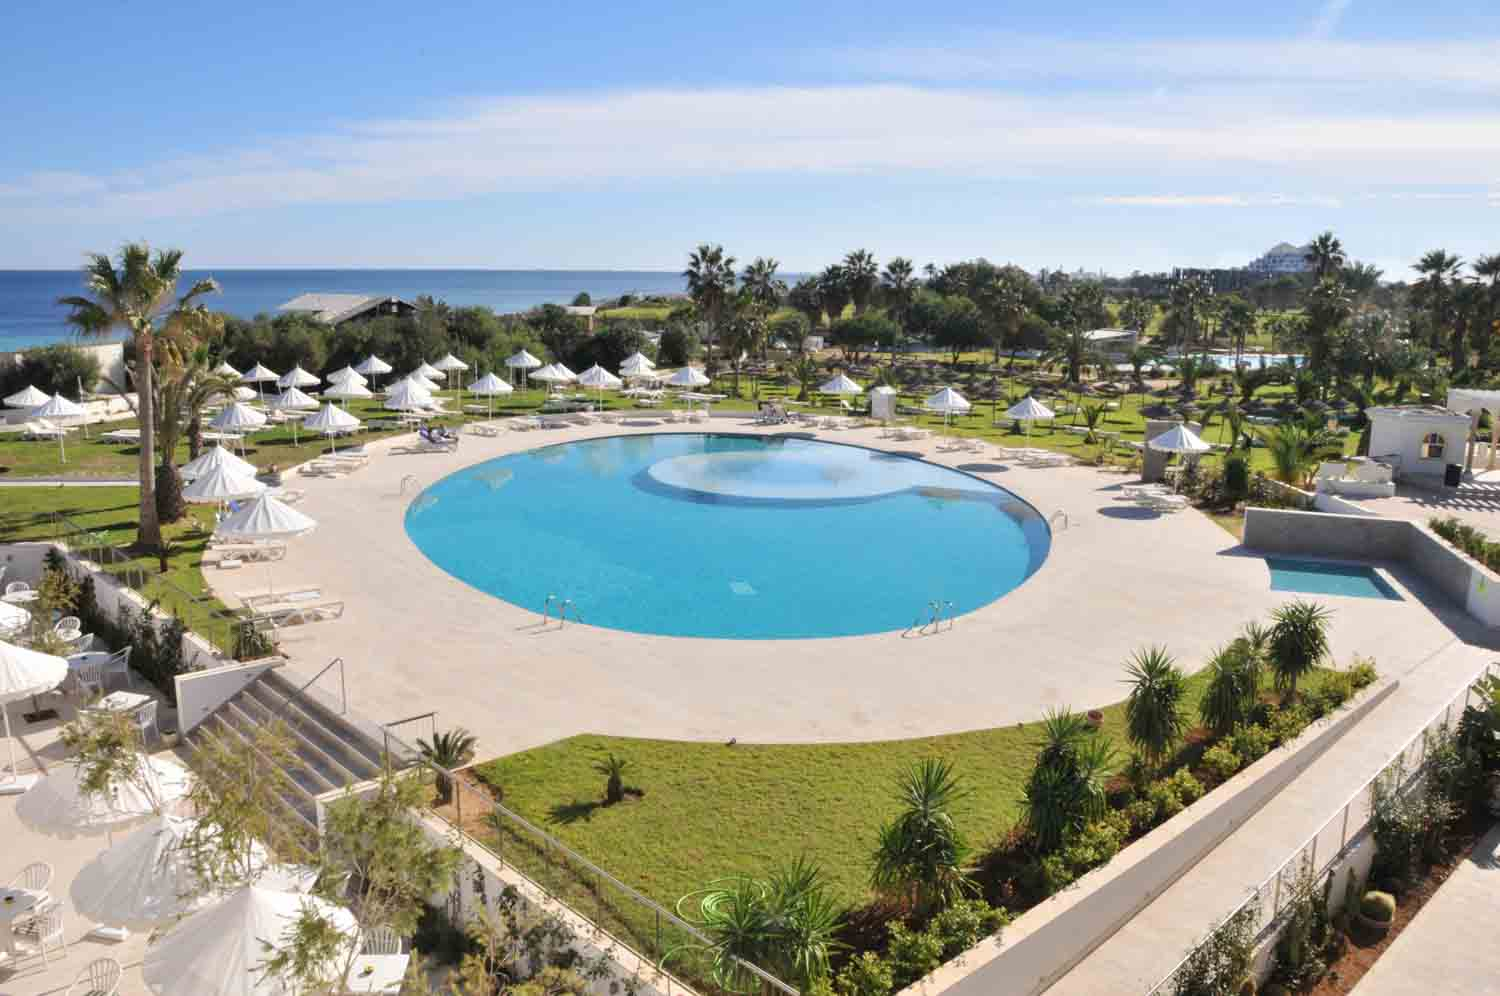 Iberostar Diar El Andalous Ariel View of the Swimming Pool